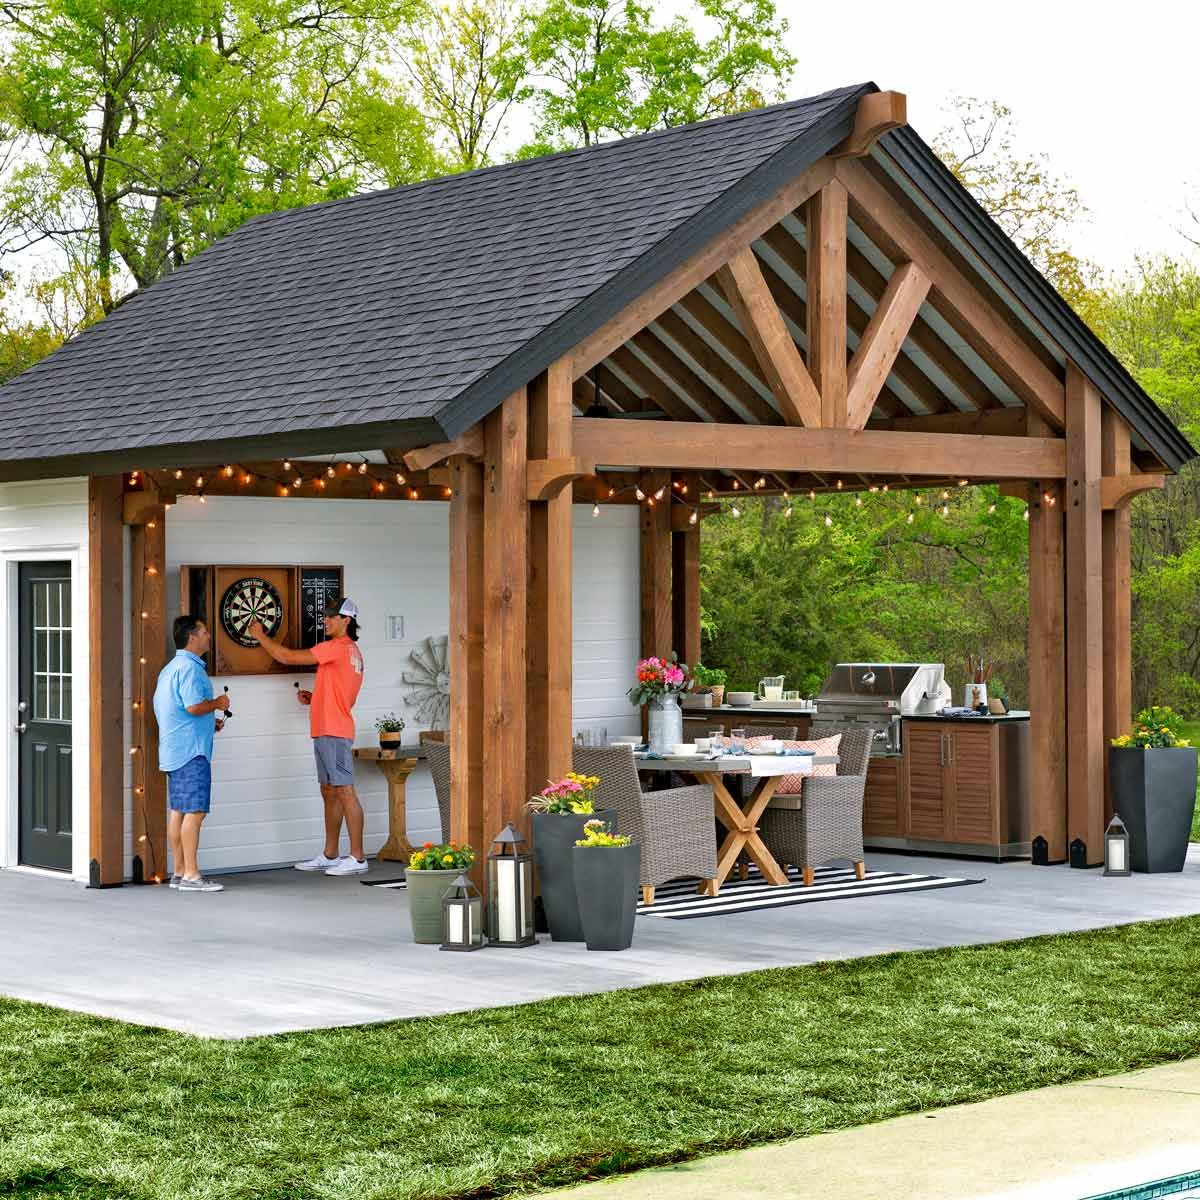 Outdoor Kitchen Pavilion Shed In 2020 Building A Shed Outdoor Kitchen Design Outdoor Kitchen